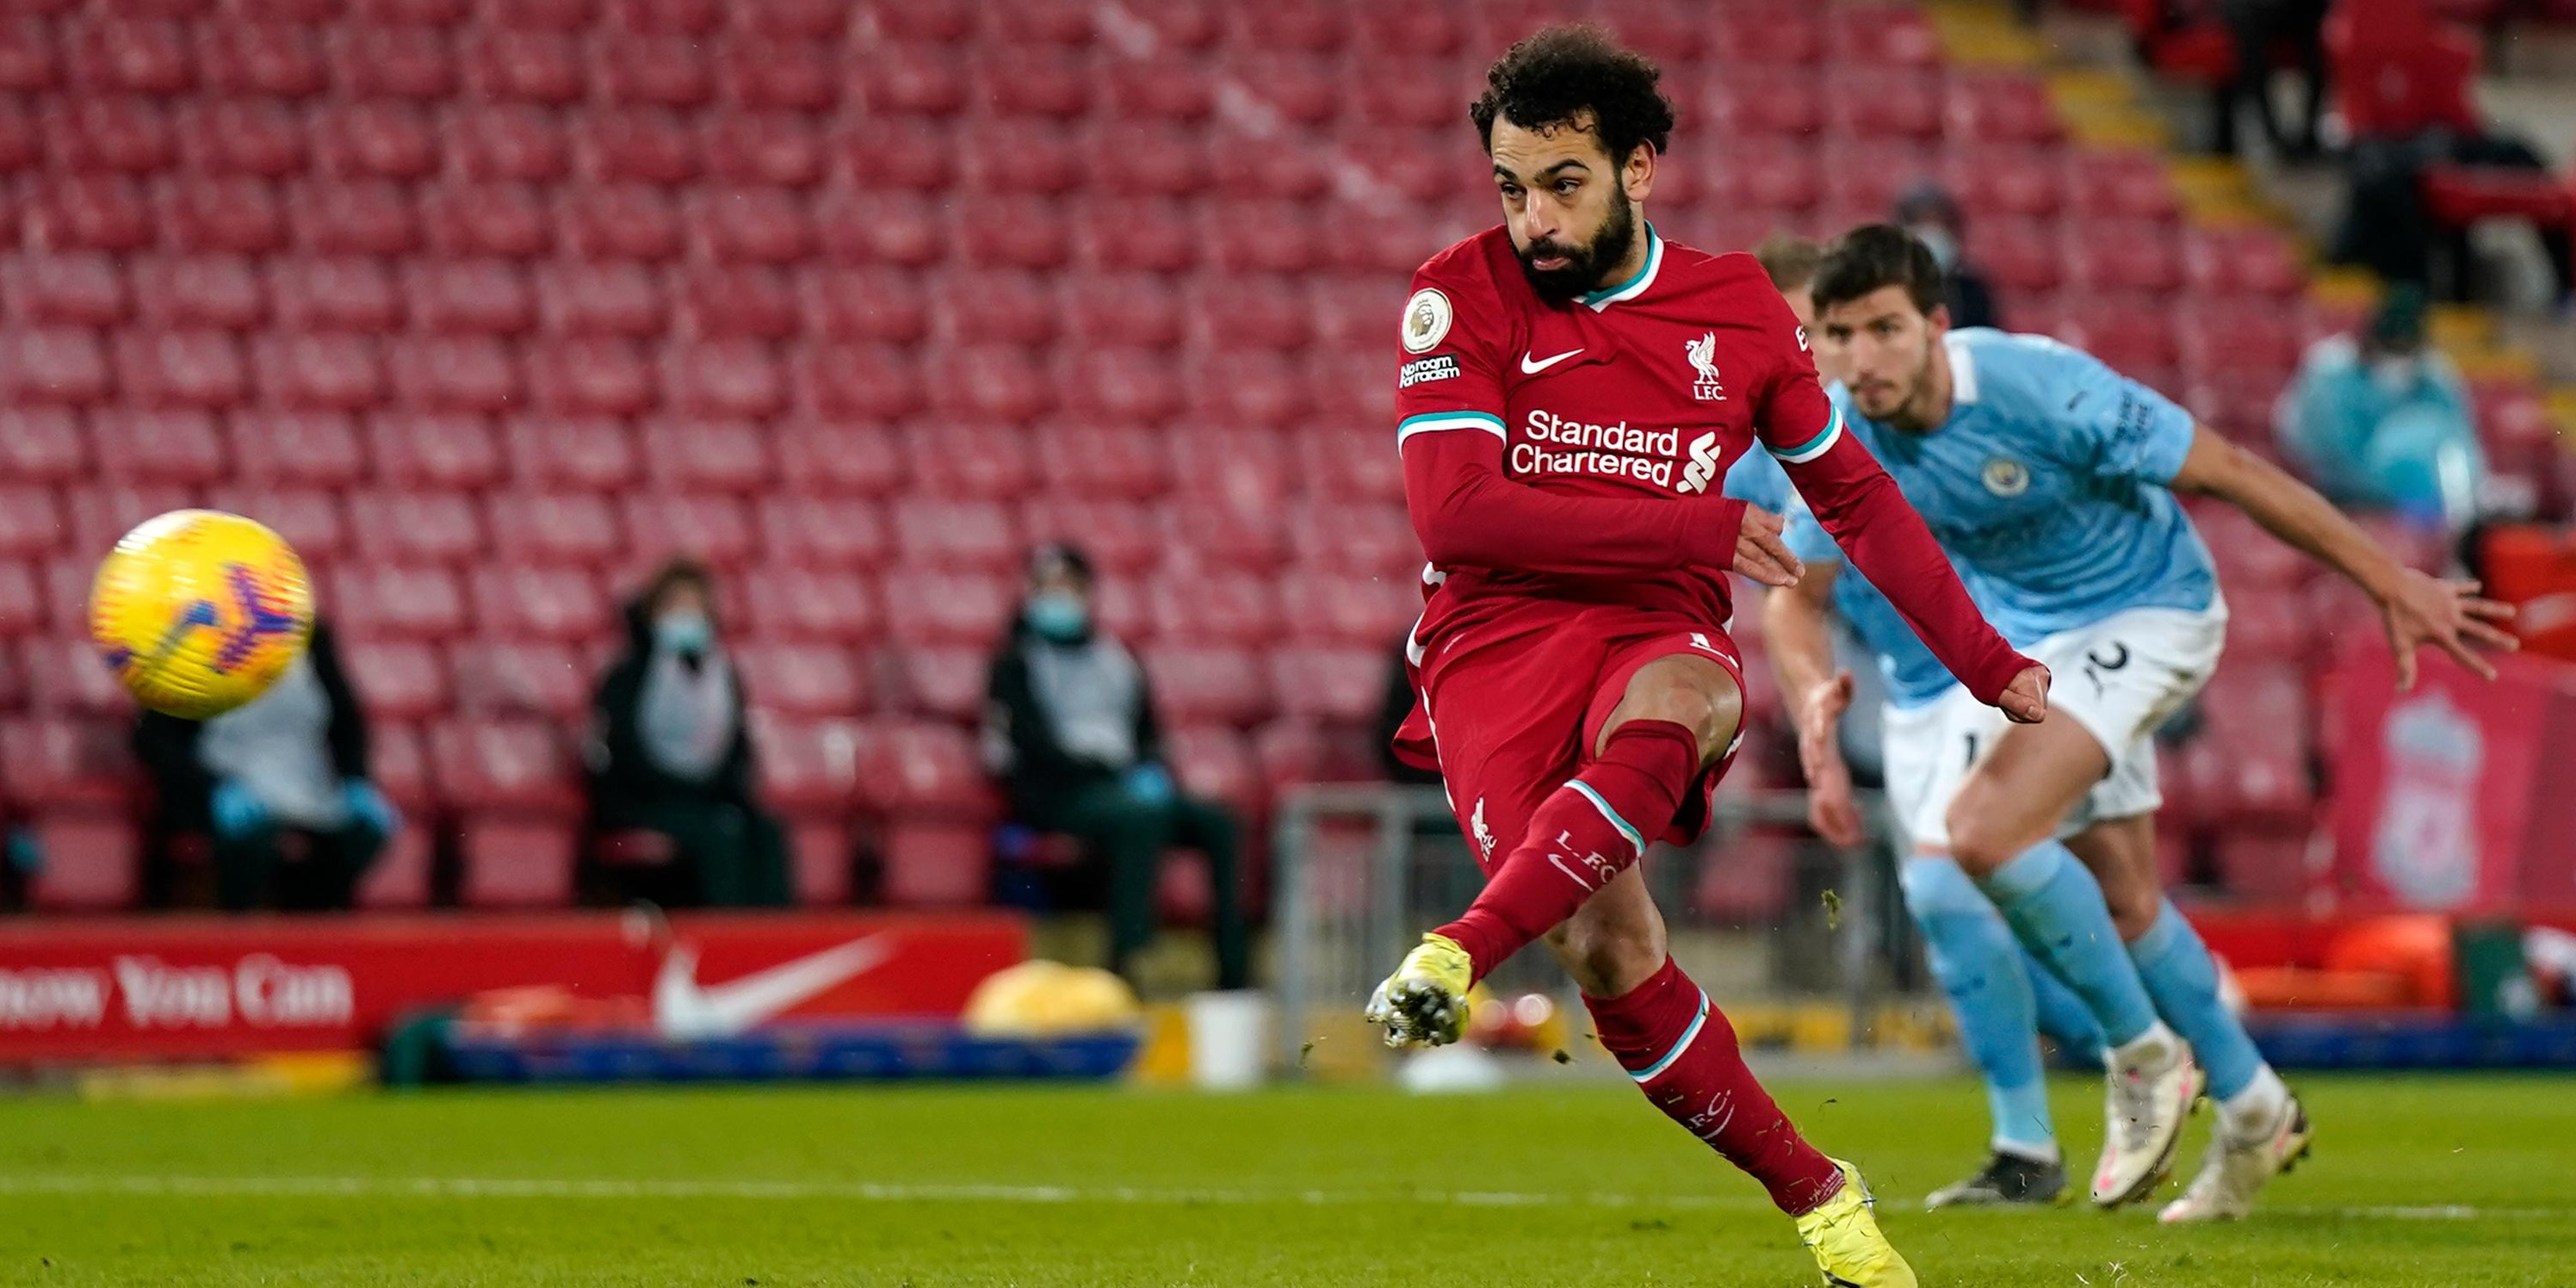 African legend Okocha urges Mo Salah to join Barcelona: 'His energy has run out with Liverpool'